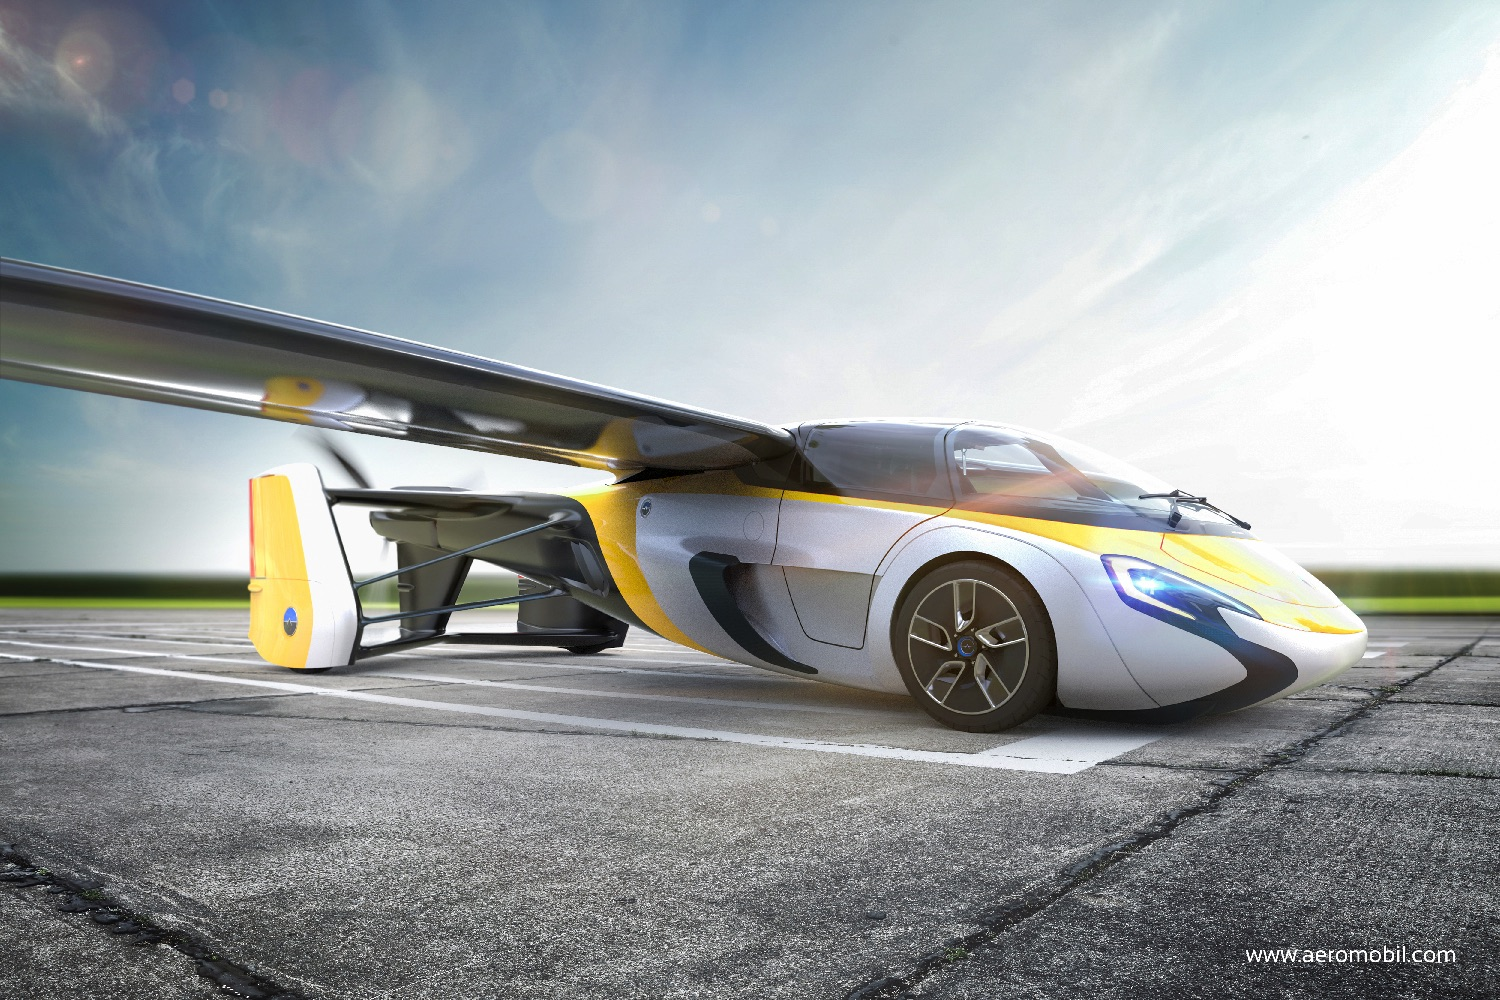 AeroMobil unveils new images of its new flying vehicle